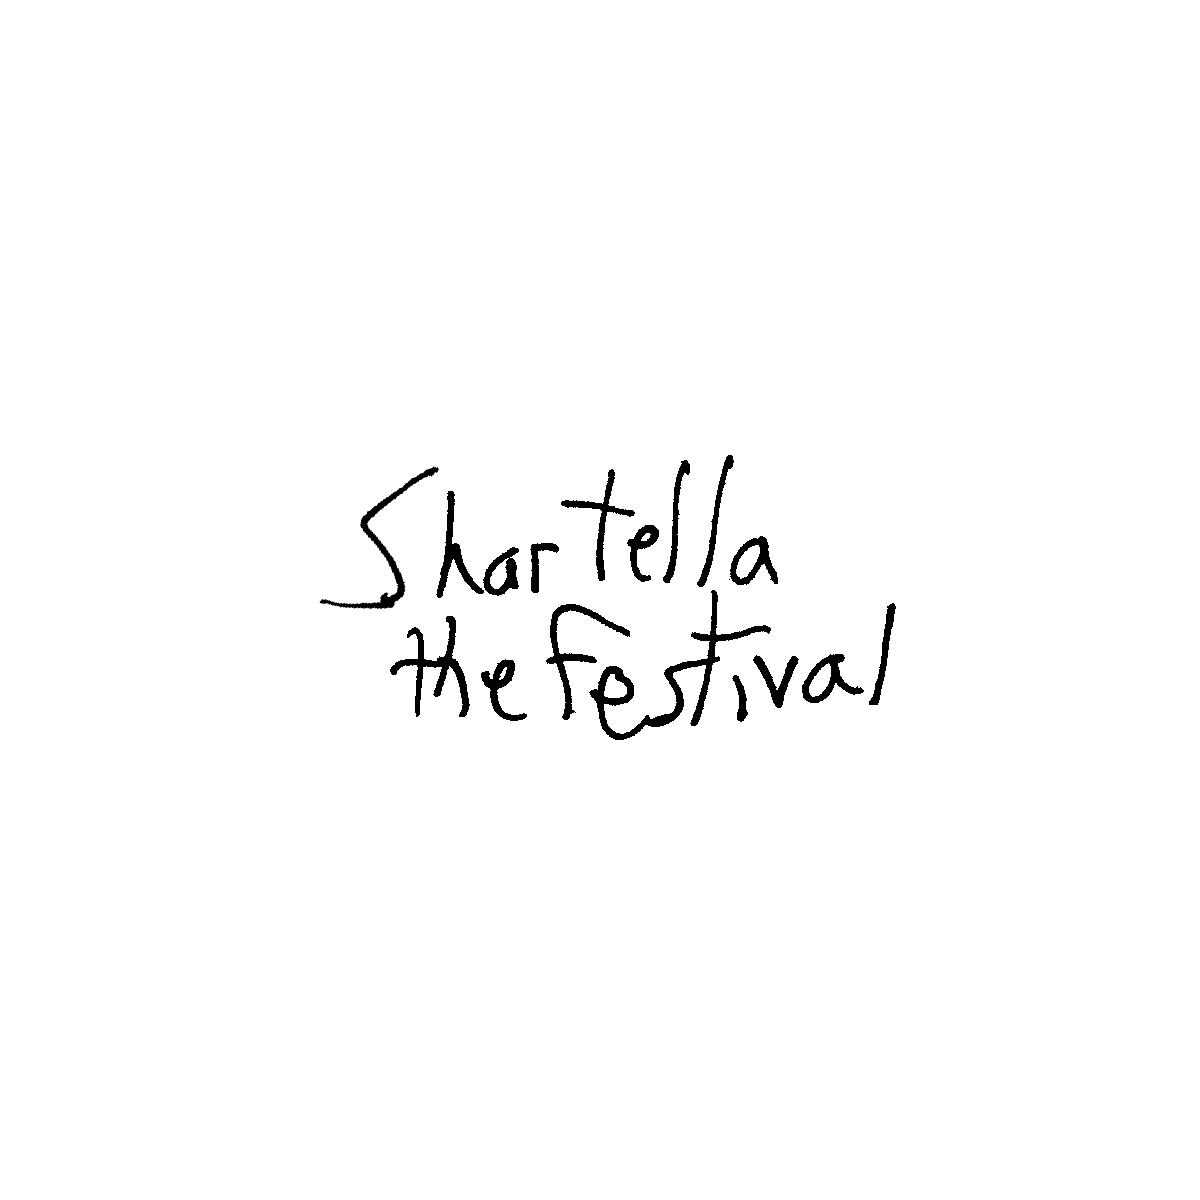 shartella cartoon doodle